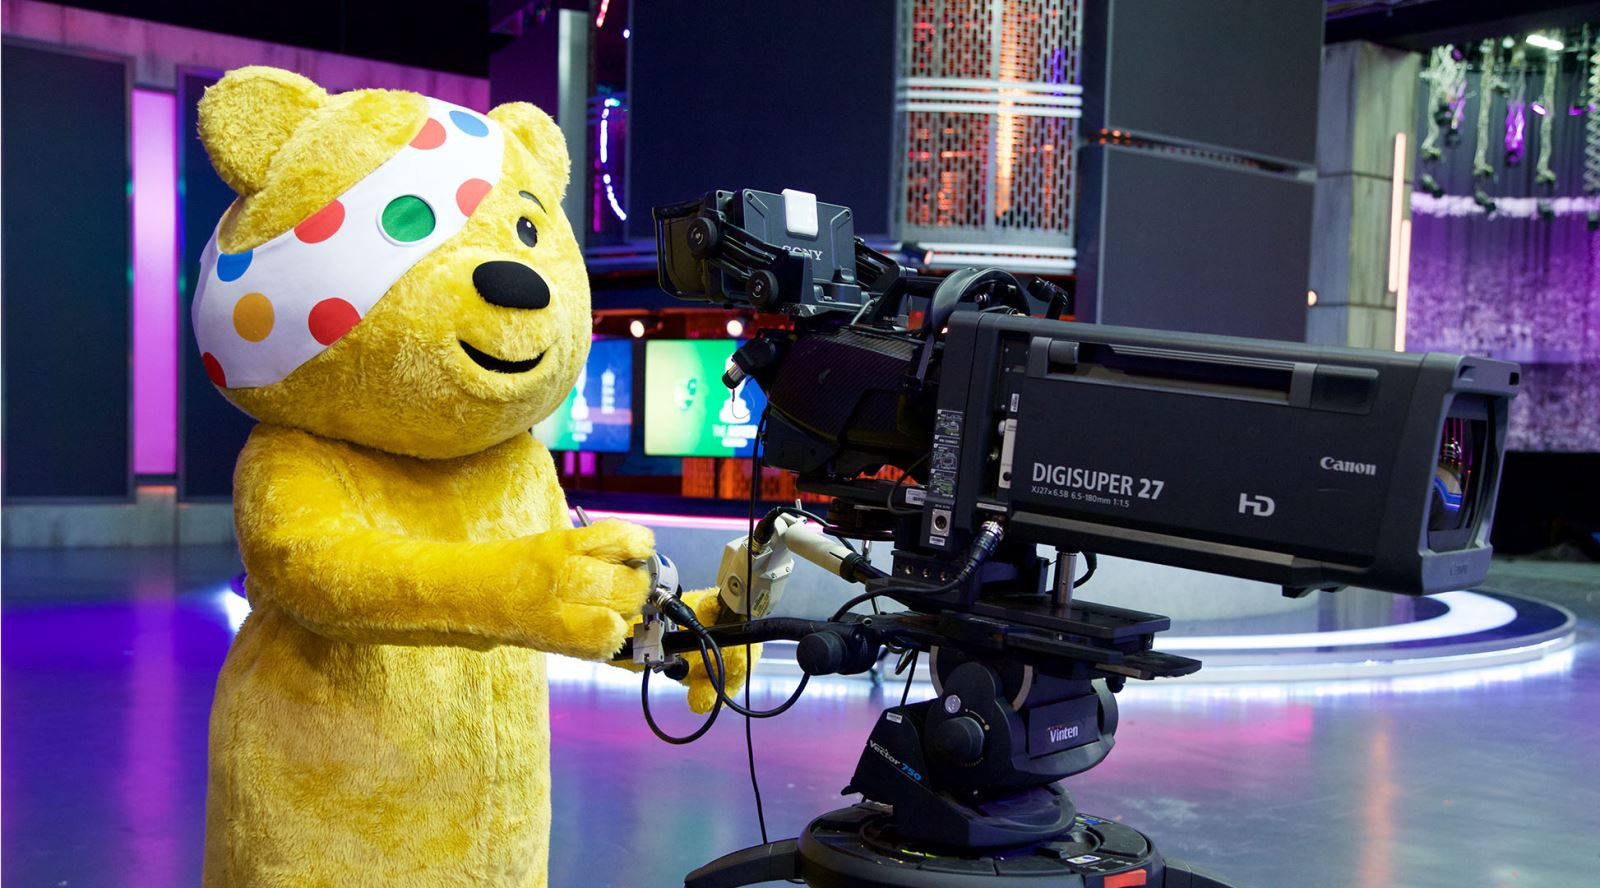 Pudsey spotted on camera at the Timeline/BT Studios – must be nearly time for Children in Need!